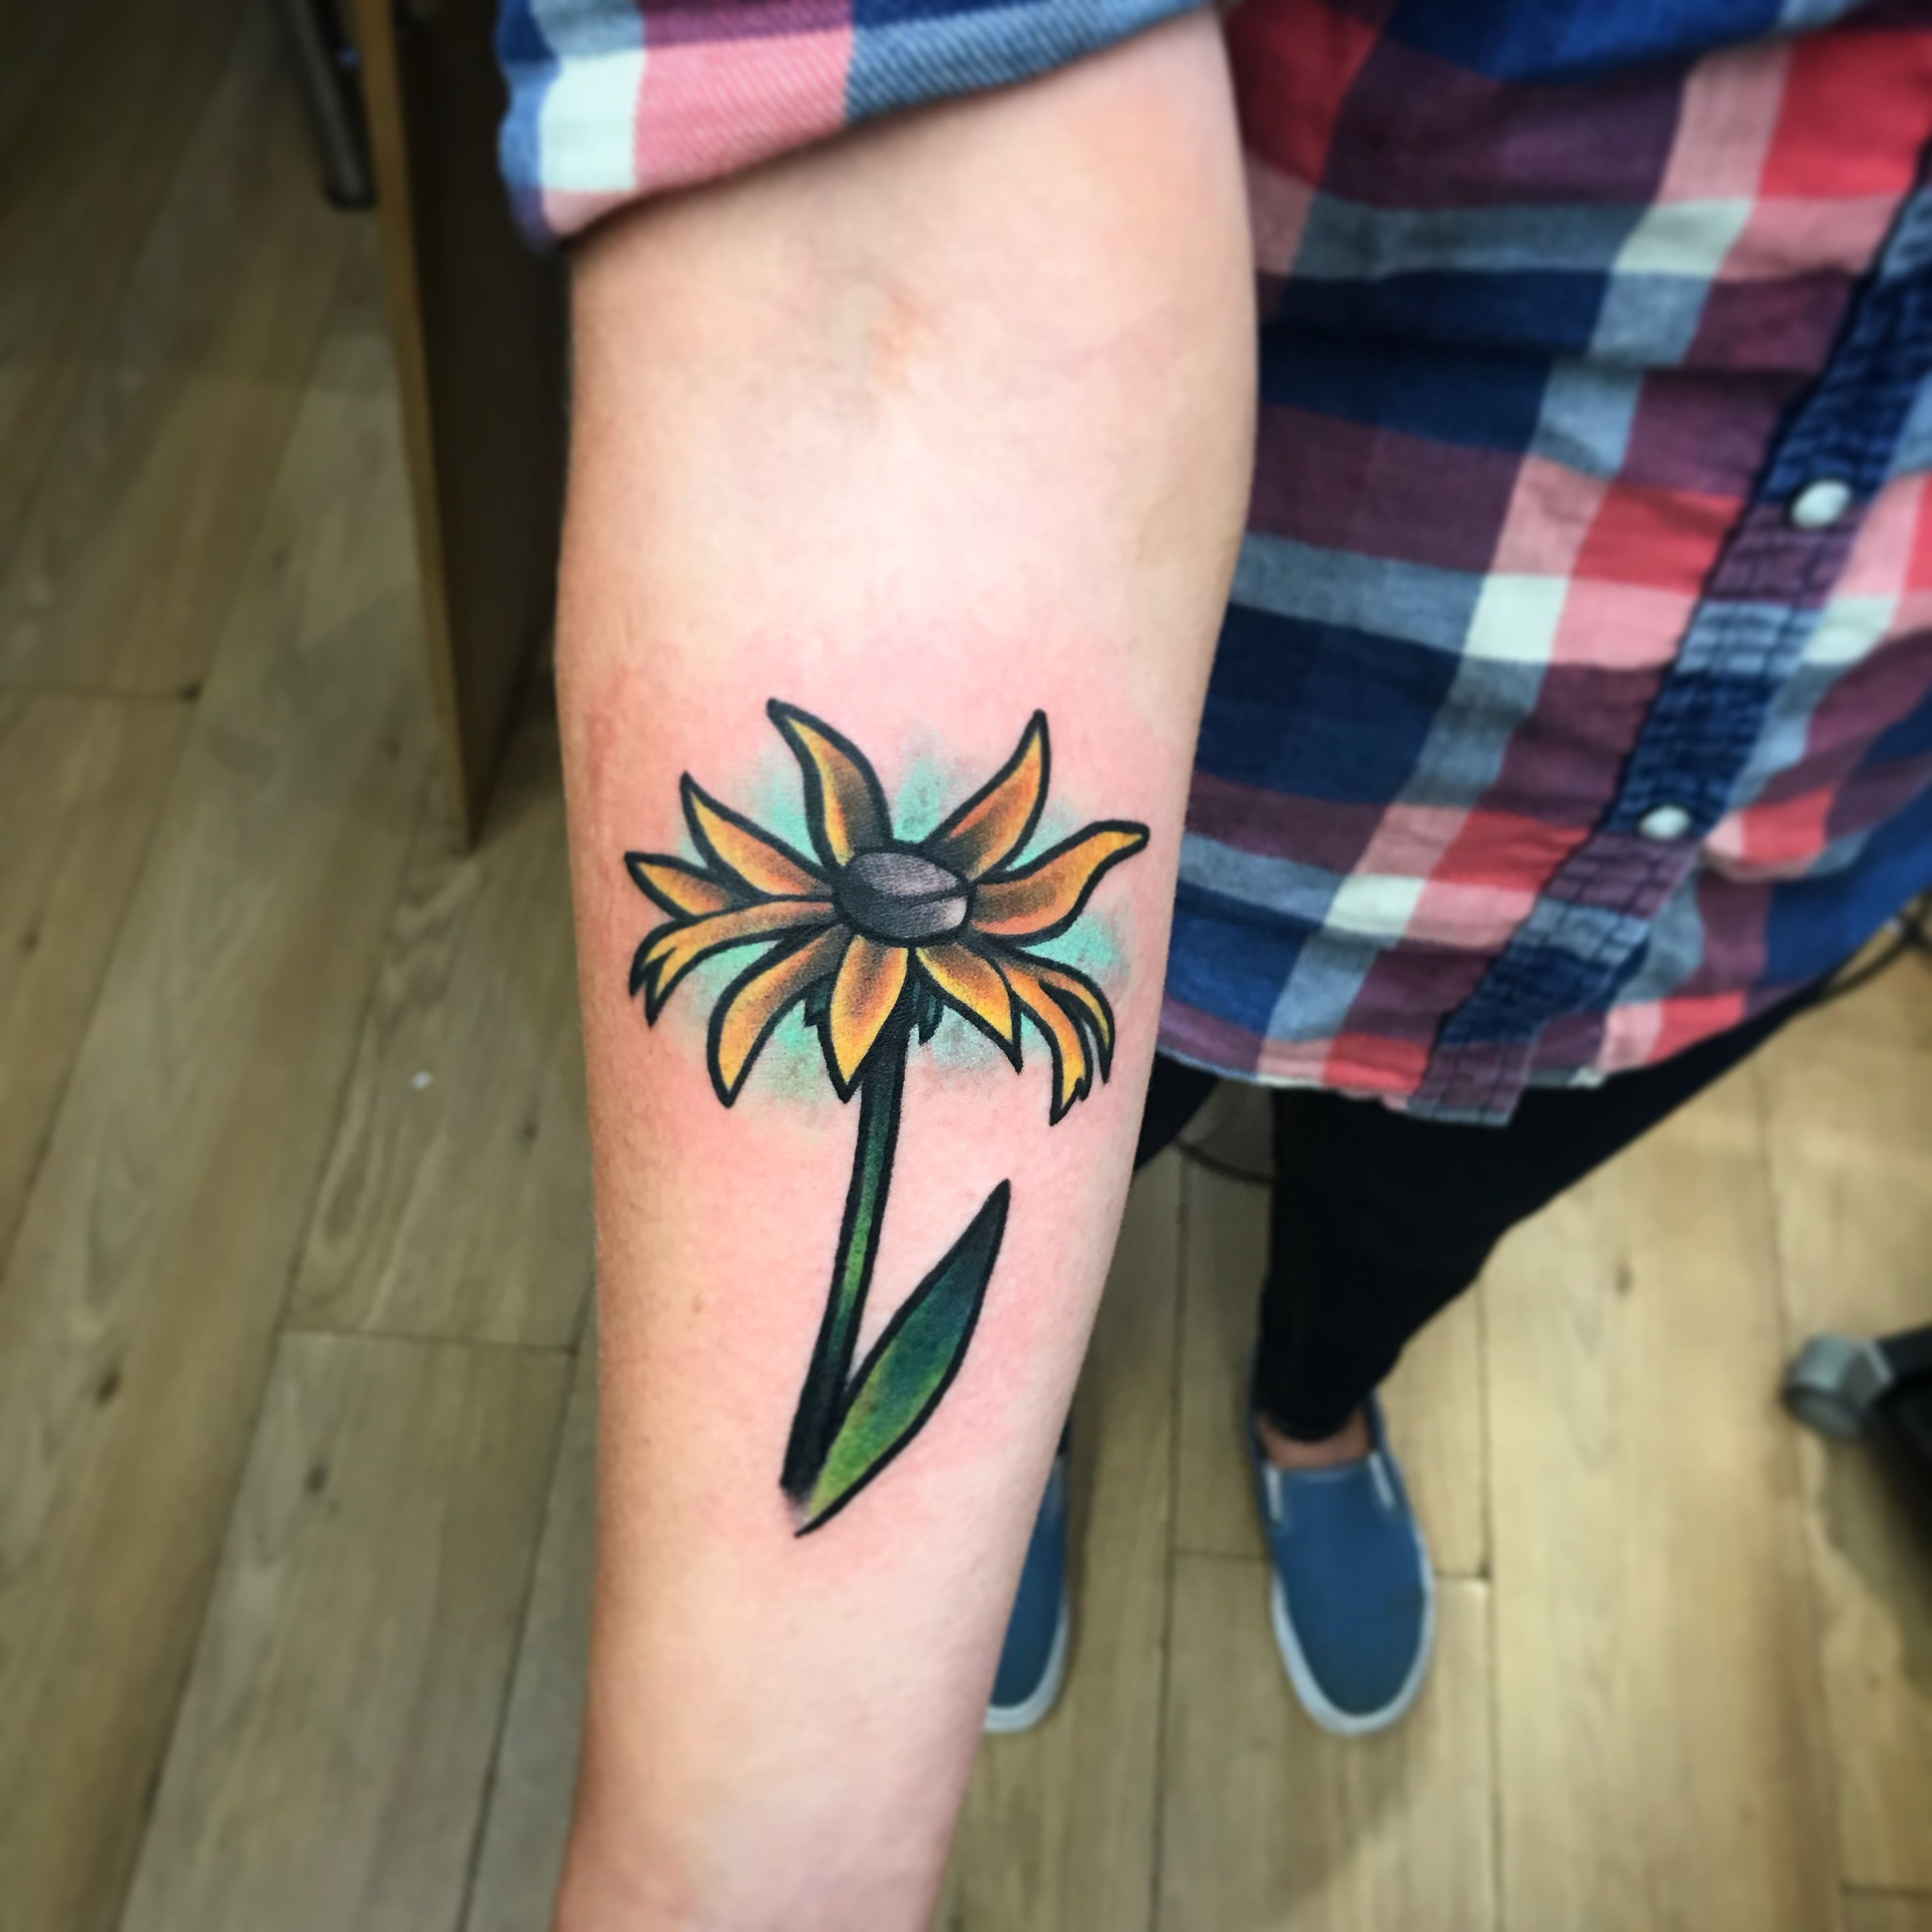 Sunflower By Fifth Dimension Tattoo & Piercing, London